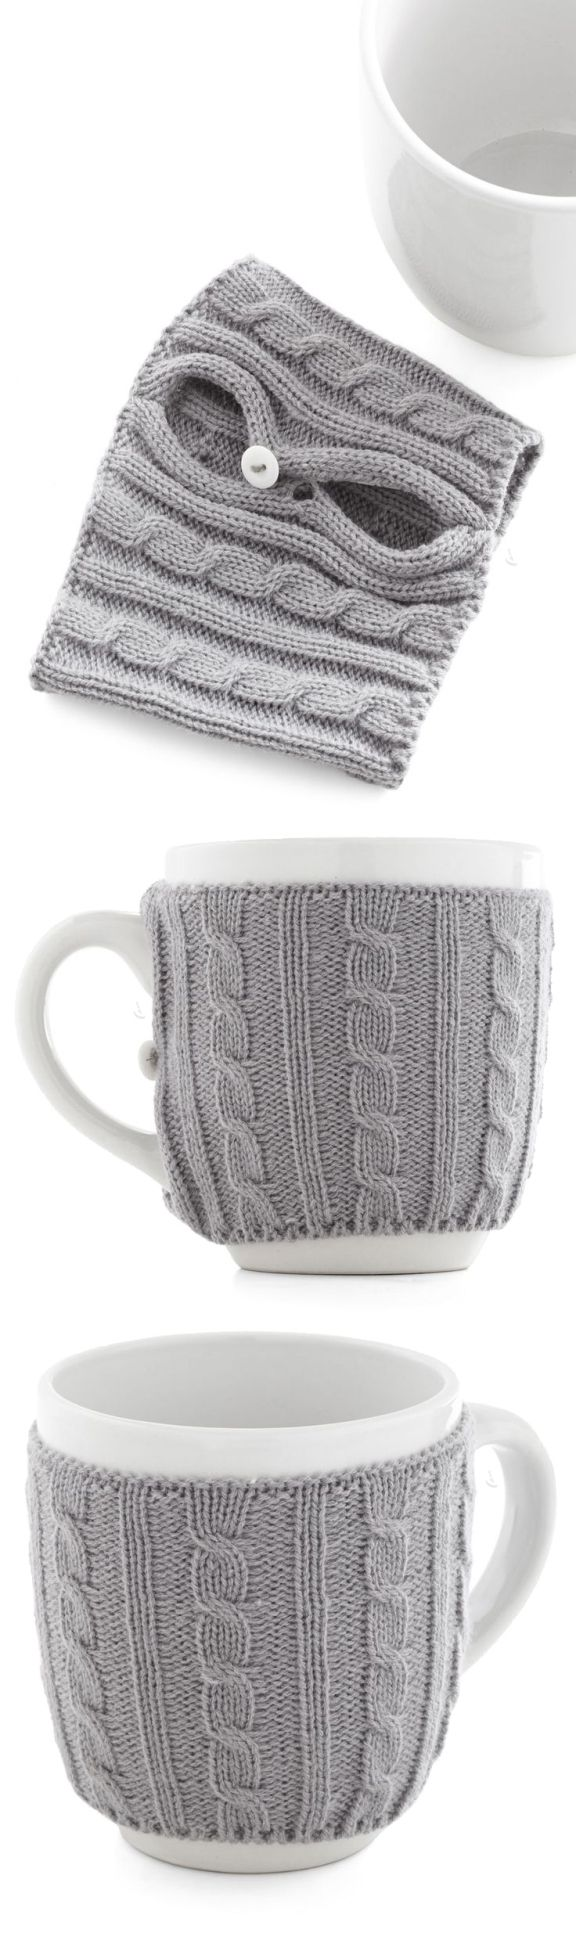 Snug mug - a coffee cup with a sweater! Keeps your tea warm #product_design